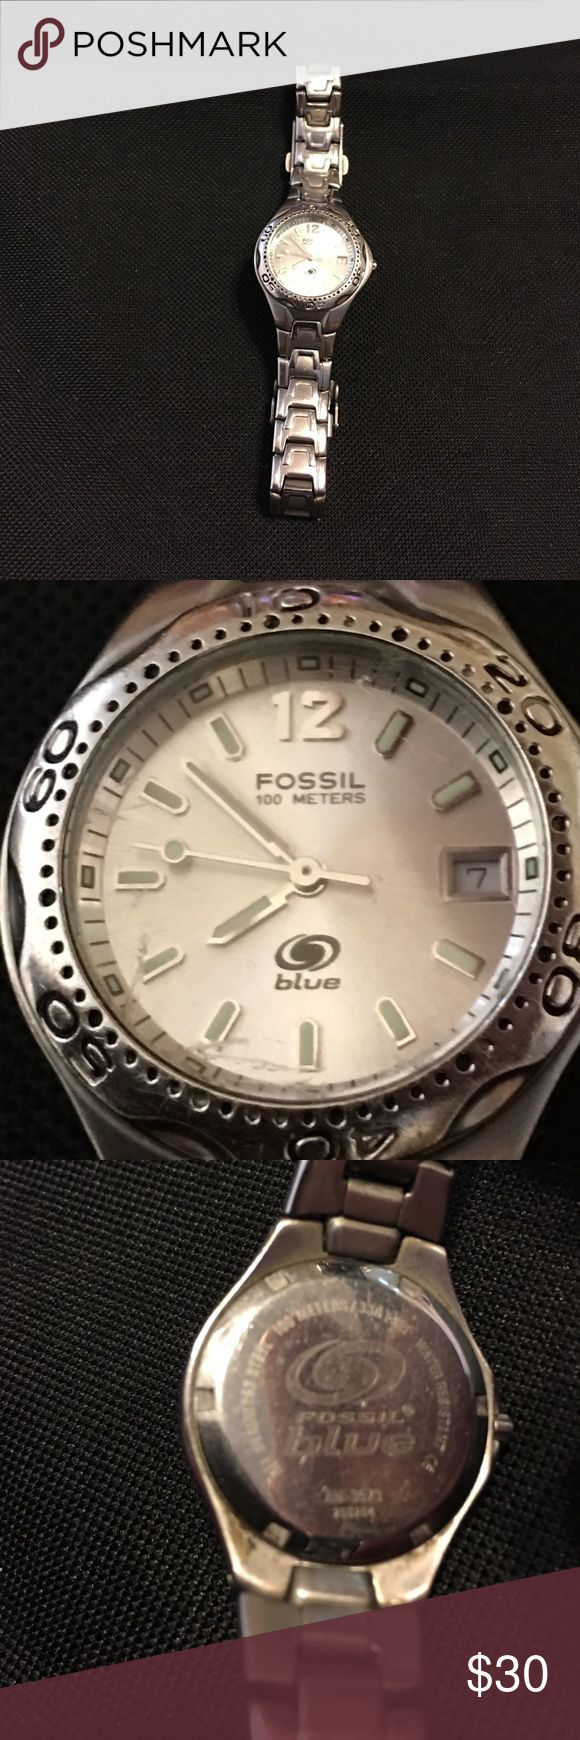 ❌FIRM❌Authentic Fossil Blue watch Authentic fossil blue watch in Fair condition it does have a scratches on the face in the 6,7 and 8 hour position and scratches on the back of the band and will need a battery also I have priced it accordingly for the flaws. Fossil Accessories Watches